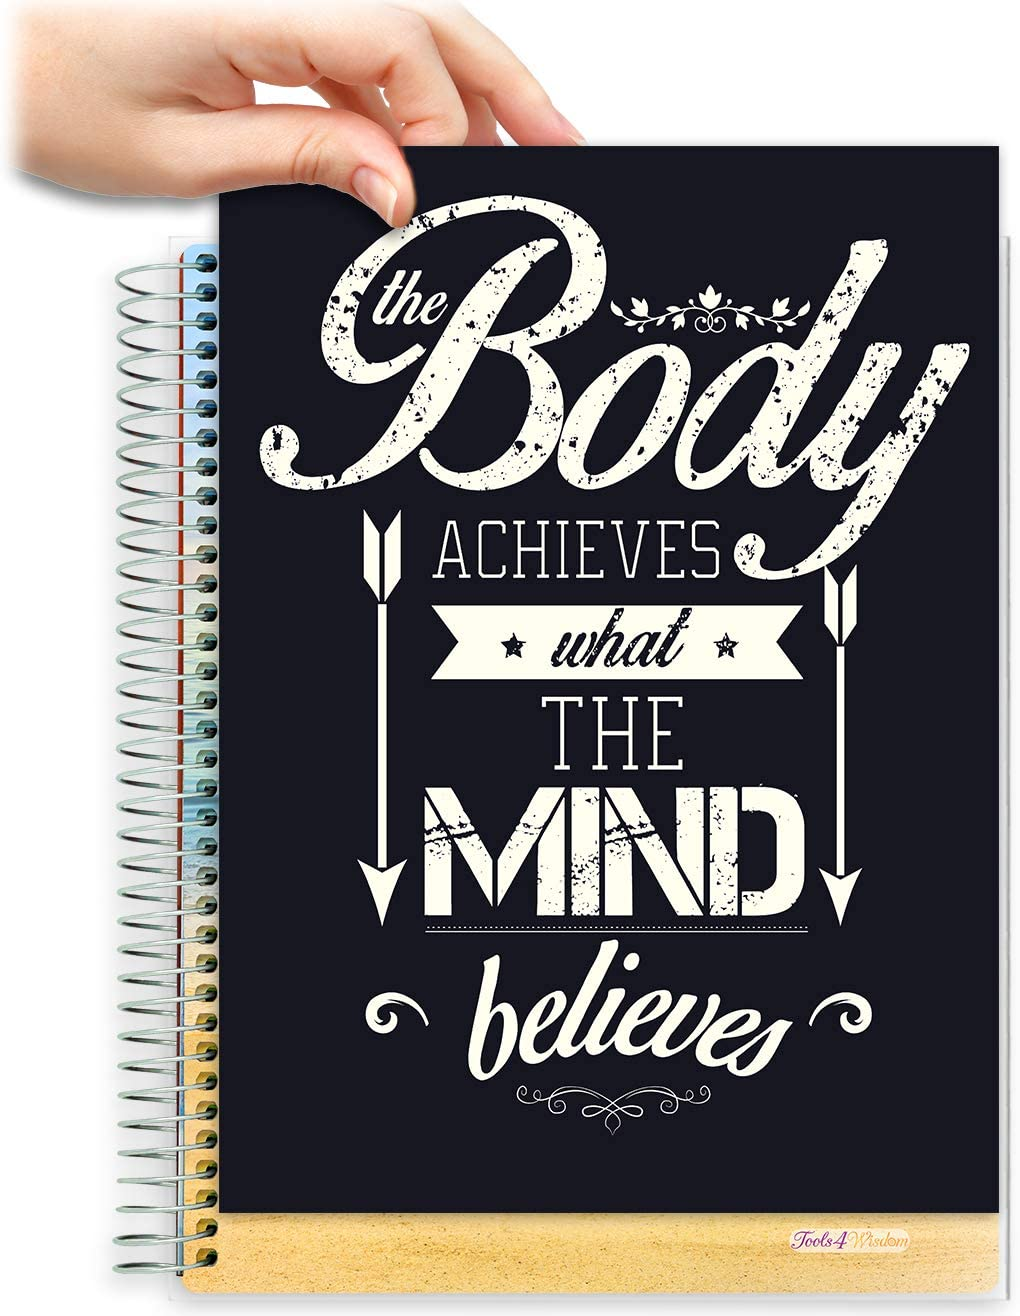 8.5x11 Customizable Softcover Planner • April 2021 to June 2022 Academic Year • Body Mind Quote